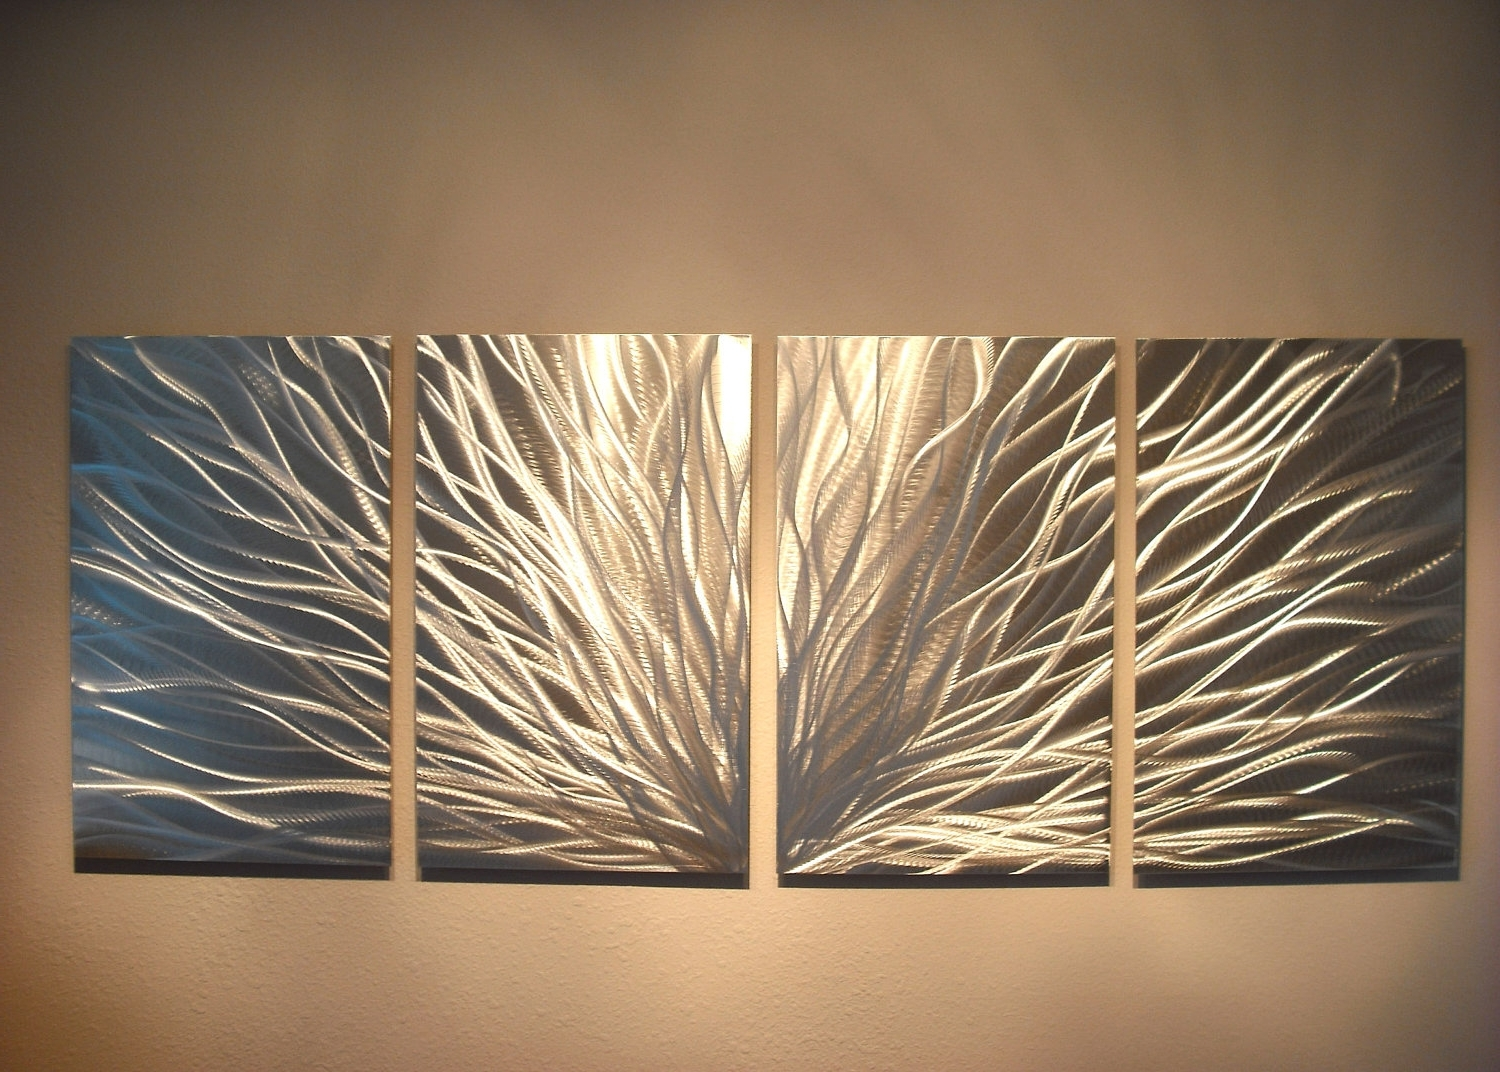 Widely Used Radiance – Abstract Metal Wall Art Contemporary Modern Decor For Abstract Iron Wall Art (View 15 of 15)